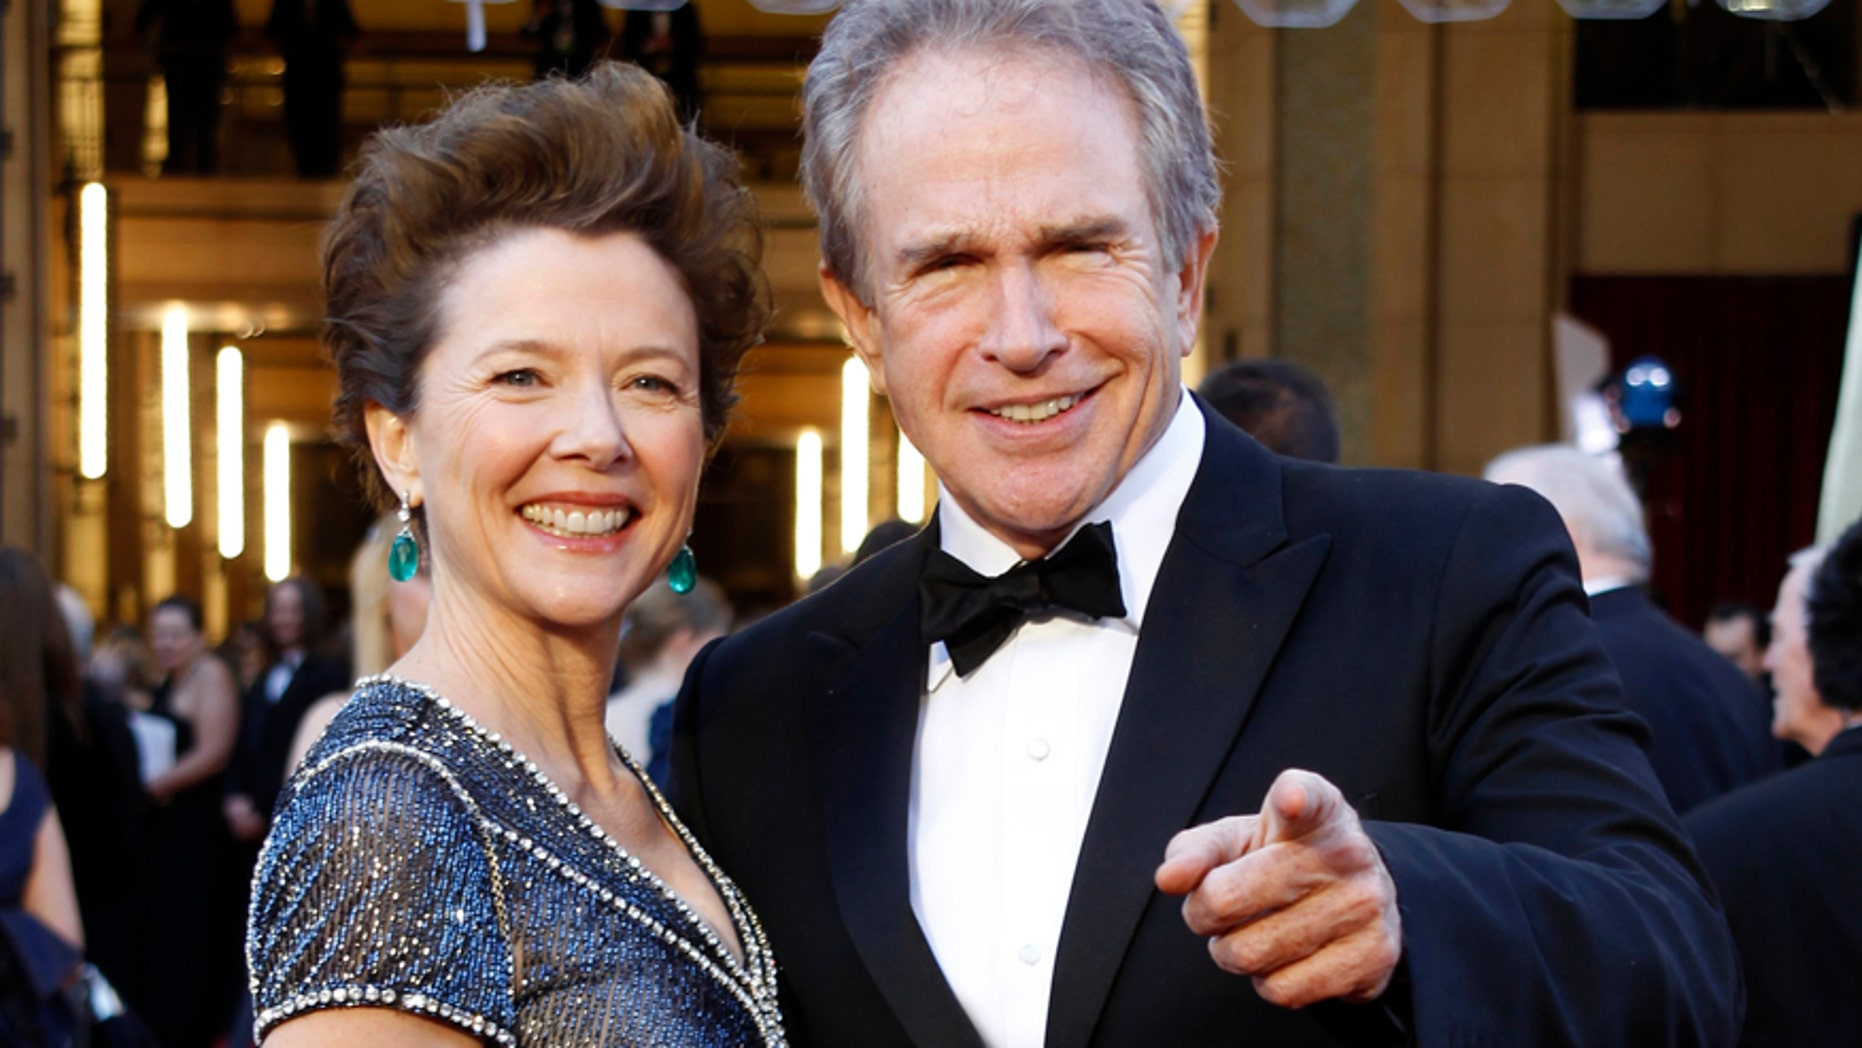 """Annette Bening, best actress nominee for her role in """"The Kids Are All Right"""", and husband Warren Beatty arrive at the 83rd Academy Awards in Hollywood, California, February 27, 2011."""